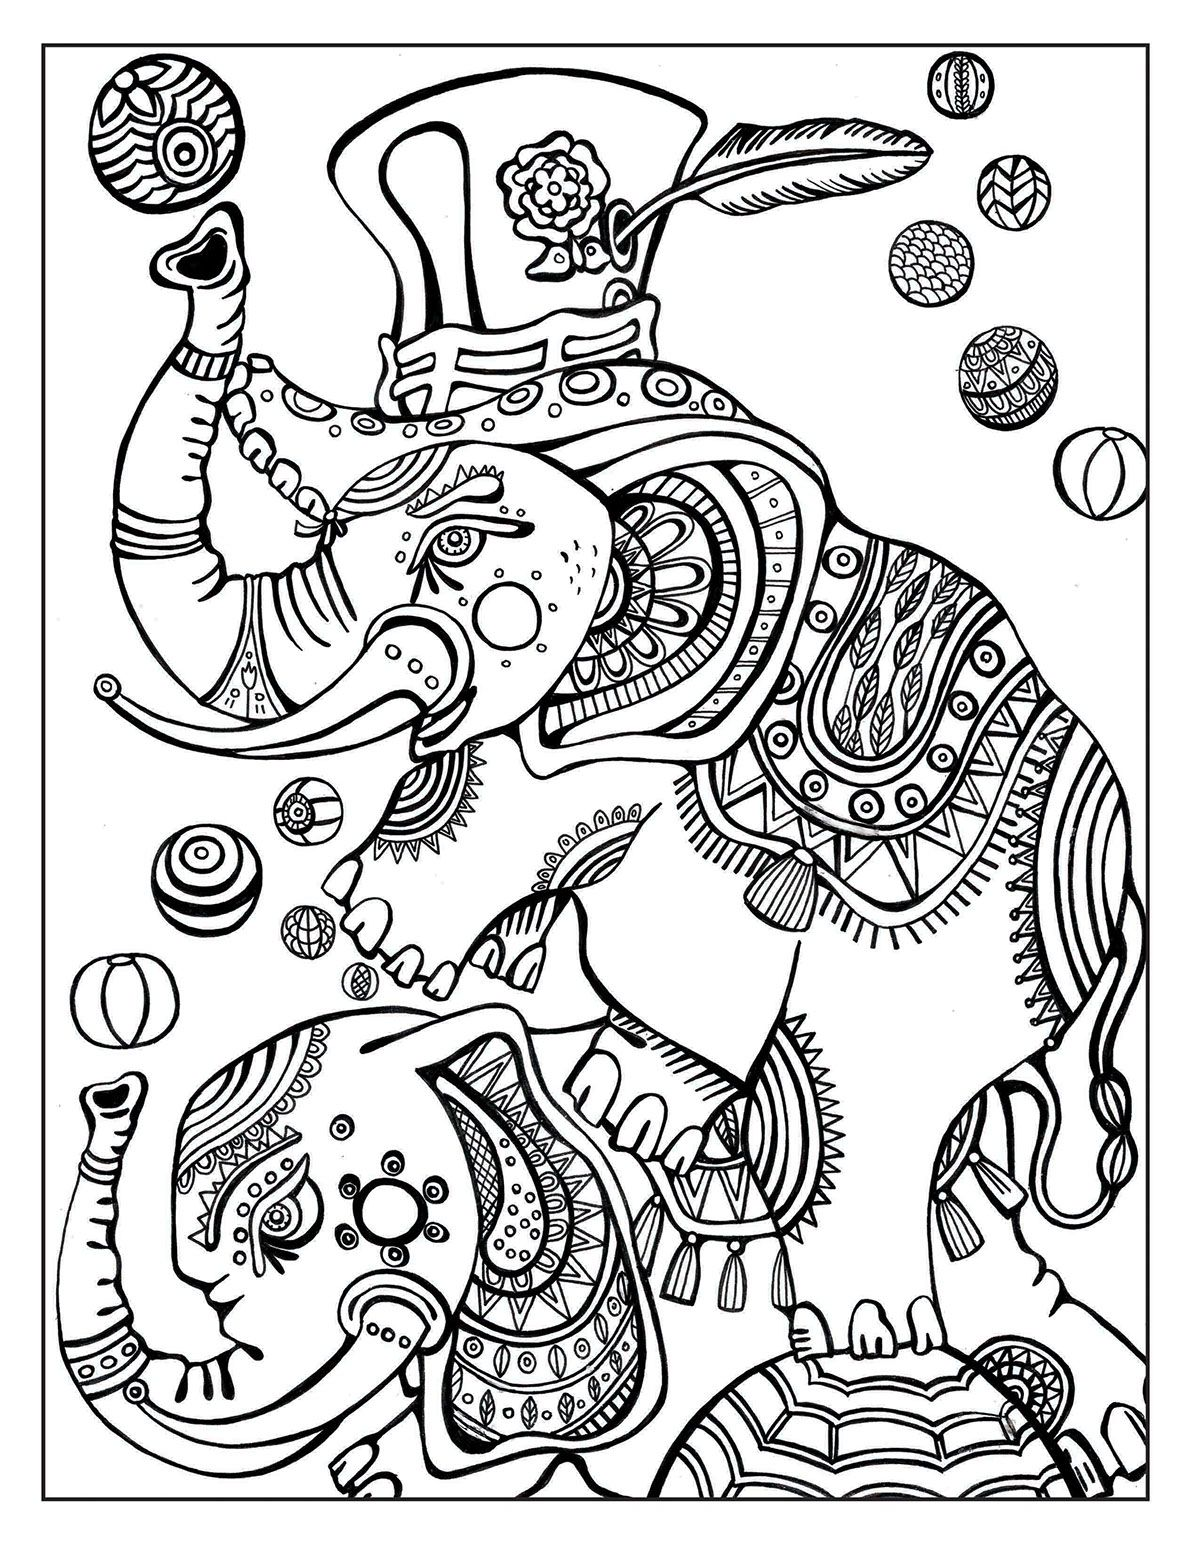 A Day At The Circus Coloring Page On Behance Coloring Pages